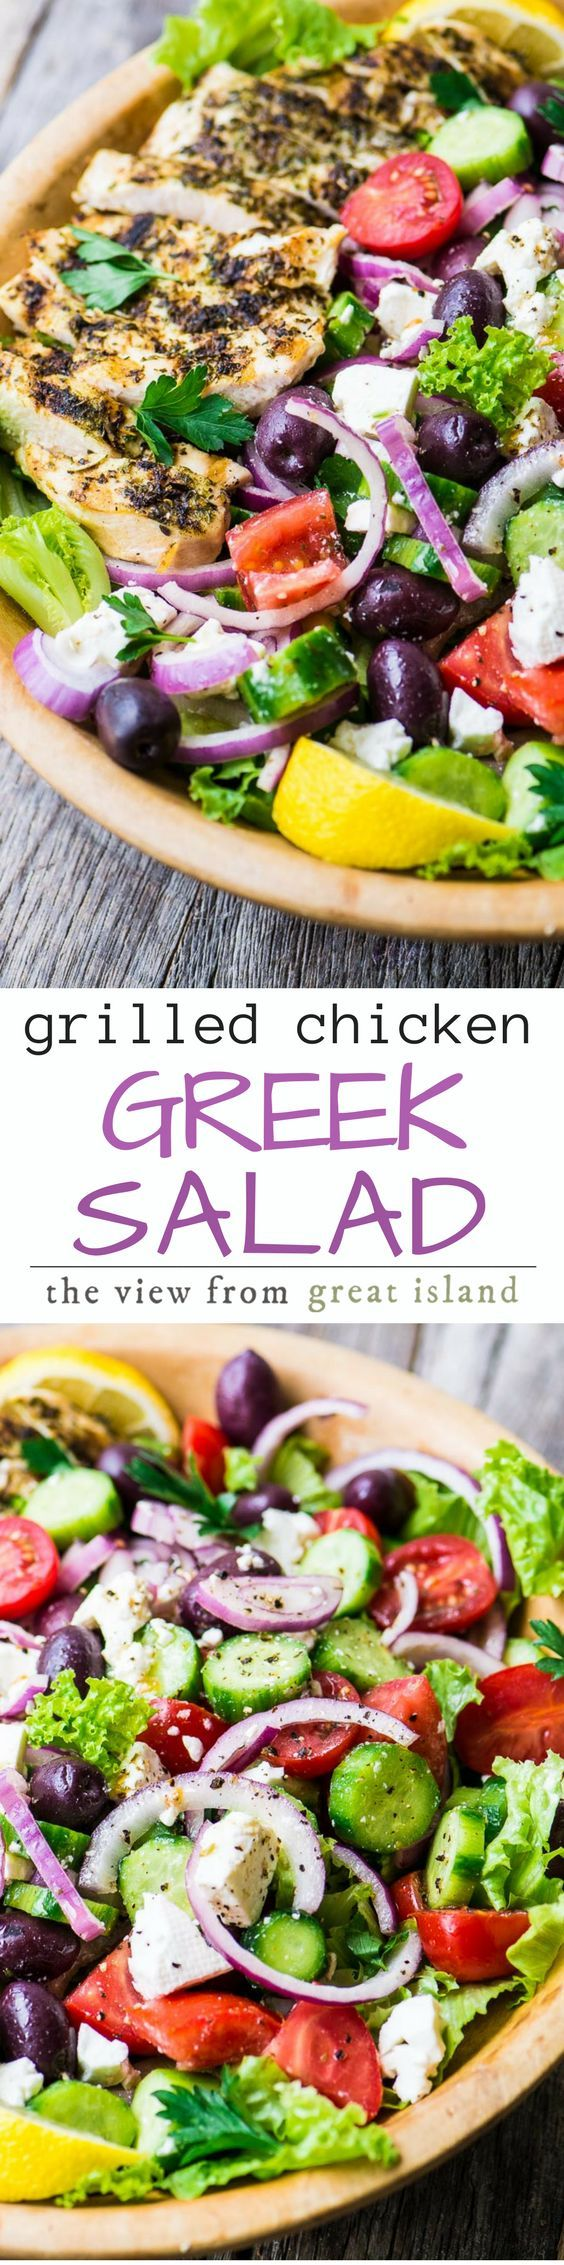 Grilled Greek Chicken Salad ~ if you love a great main course salad in the warmer months like I do then this vibrant Mediterranean bowl will win you over for sure. I've married a classic Greek salad w